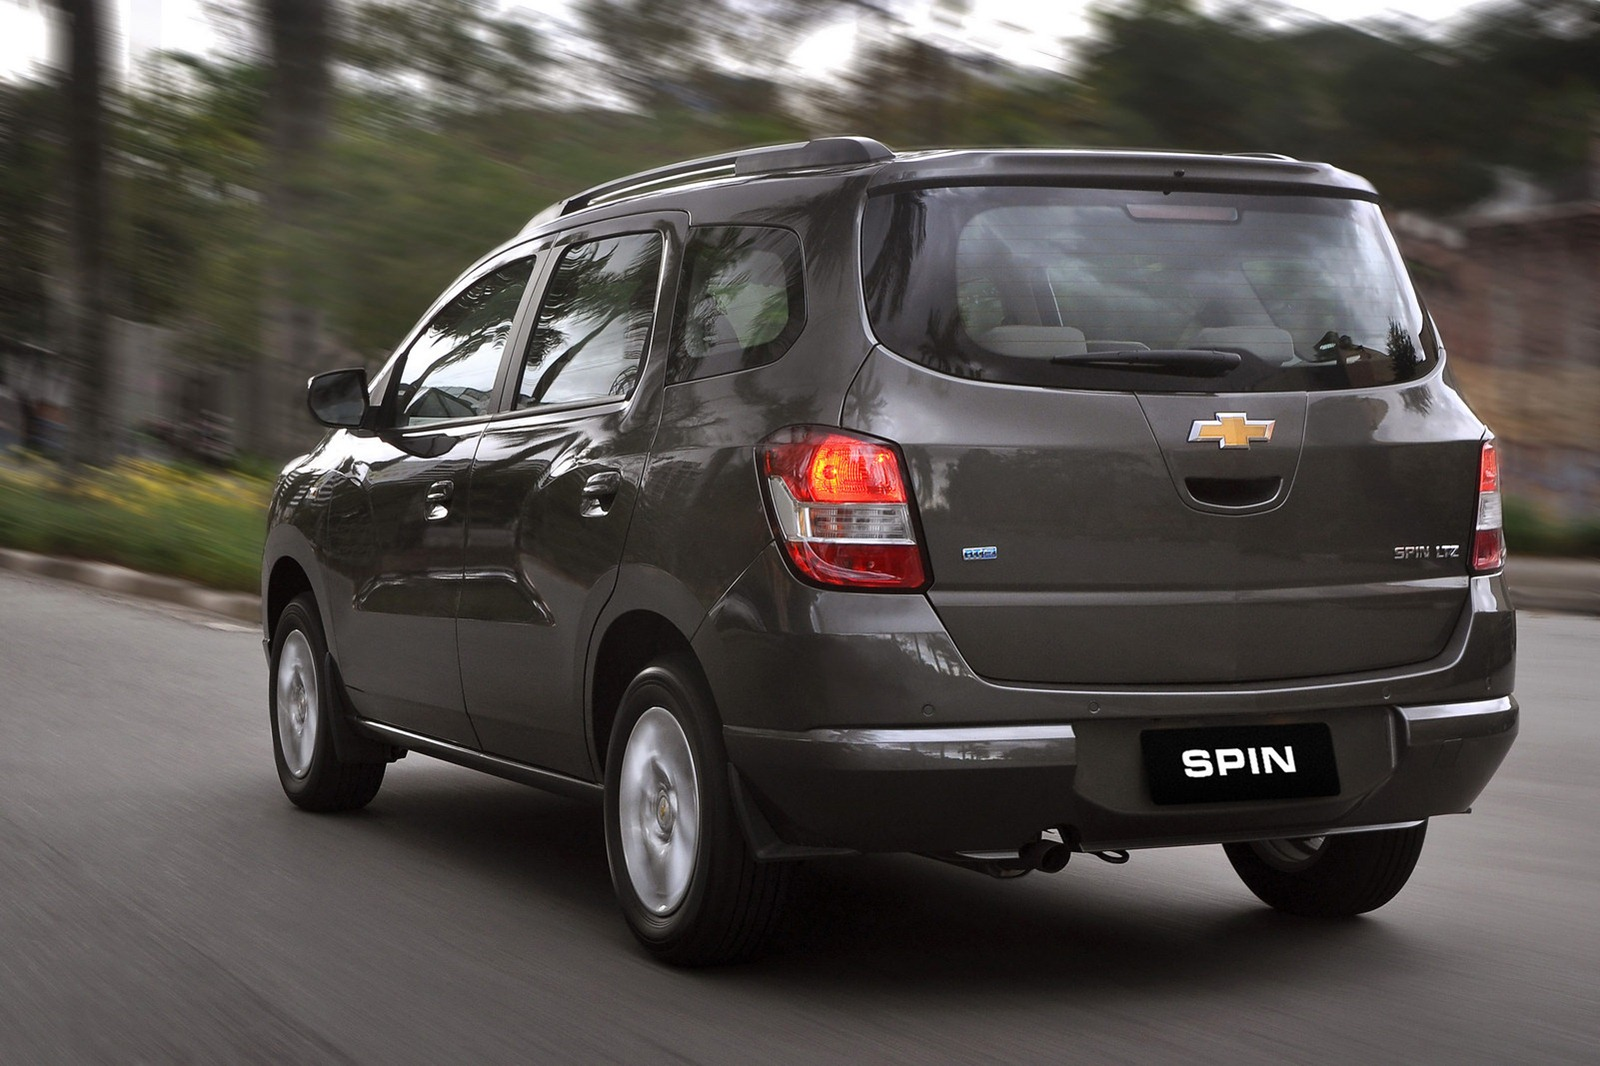 Chevrolet Spin Mpv Launched Photo Gallery Wallpapers For Desktop